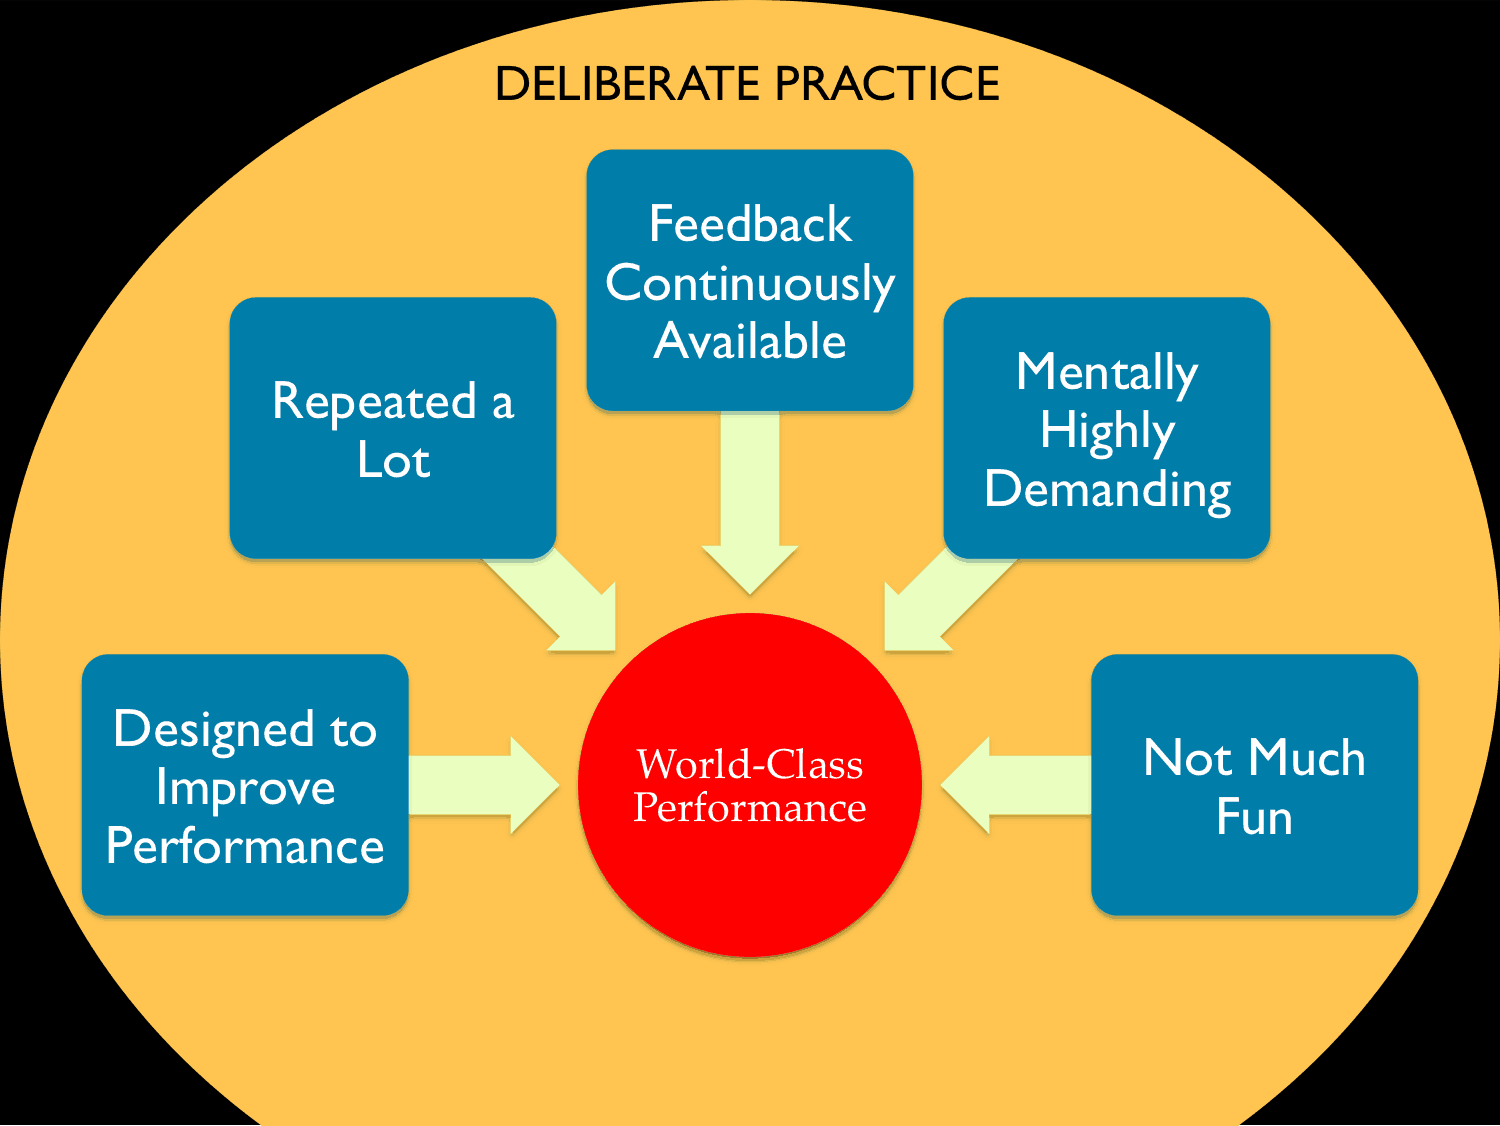 Source: http://www.seytlines.com/2015/04/get-creative-use-deliberate-practice-to-create-world-class-performance/